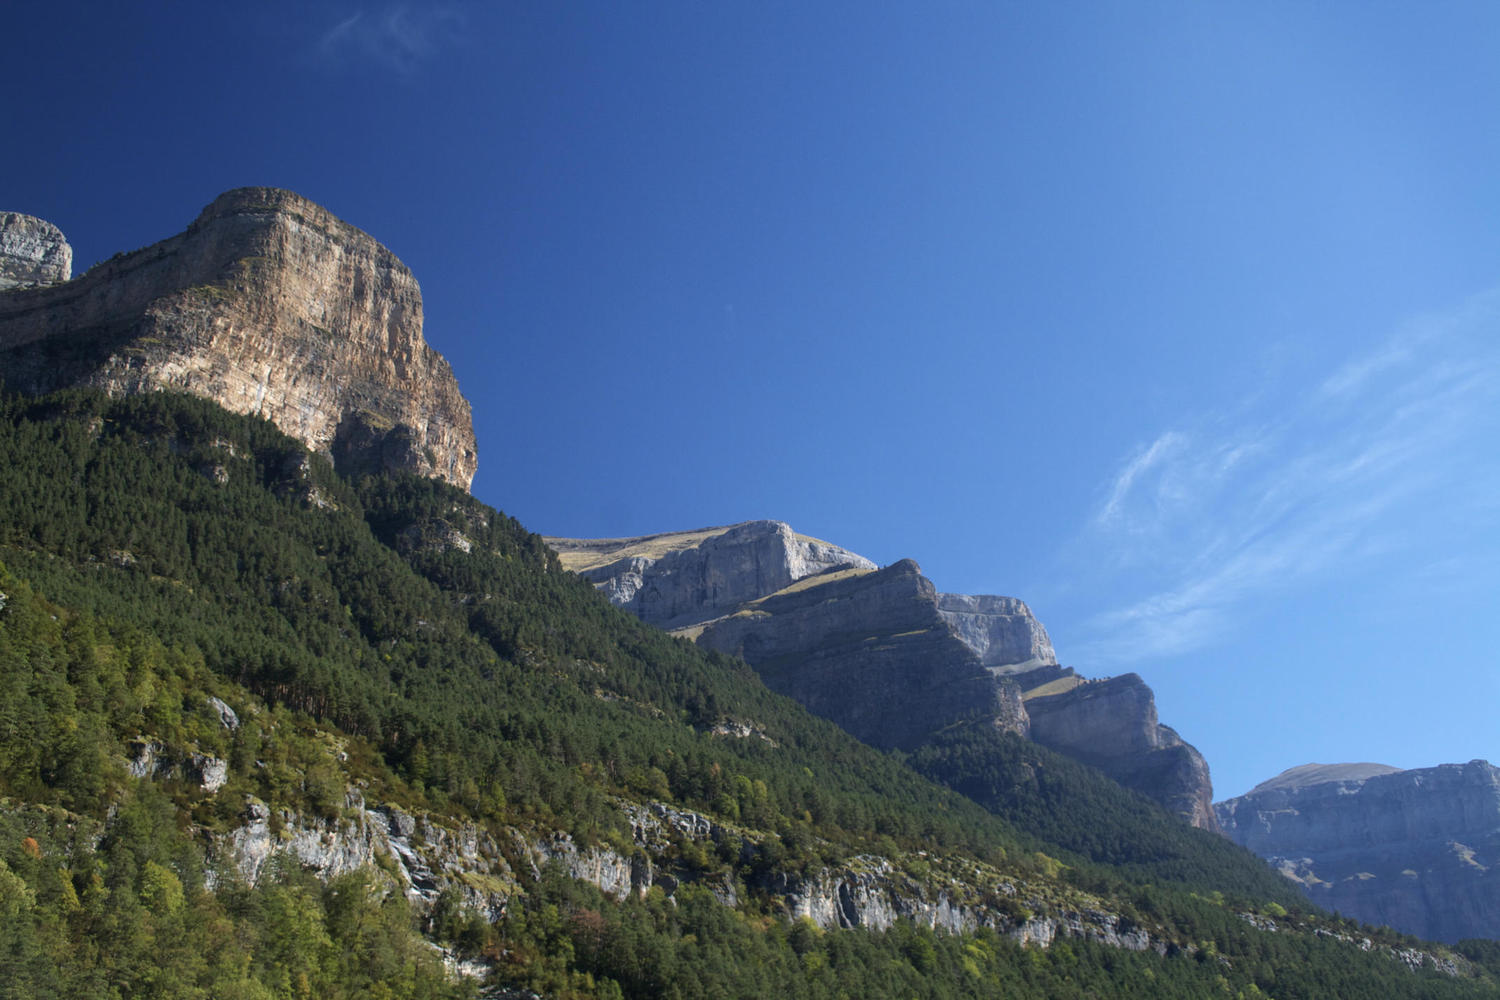 The Ordesa National Park in the Spanish Pyrenees